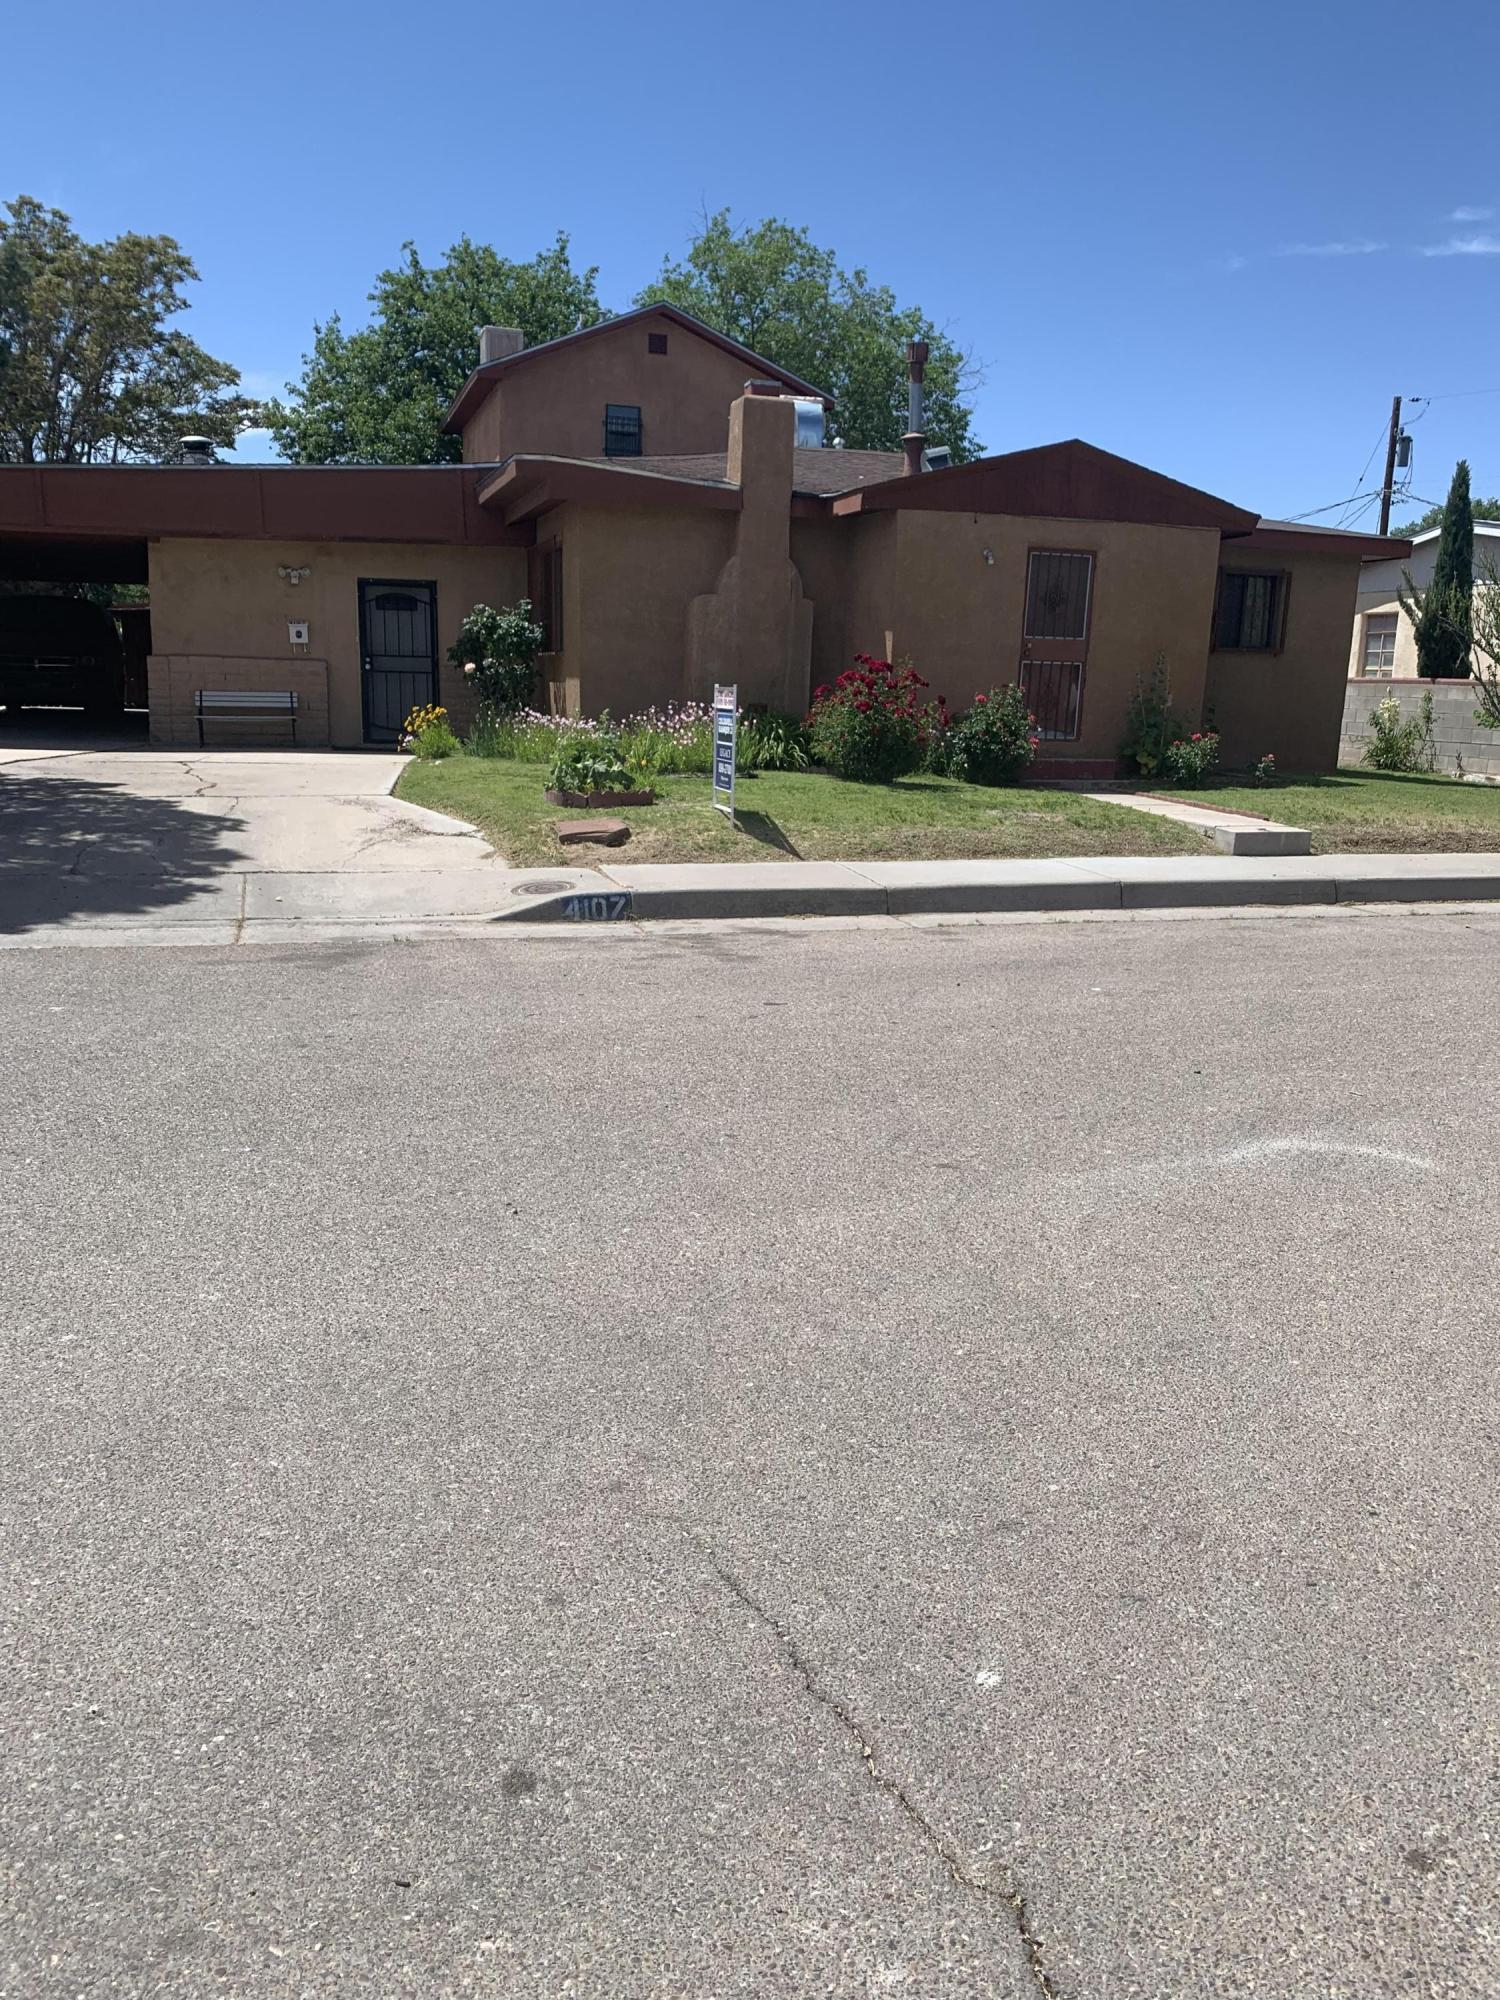 4107 10TH Street NW, Albuquerque, NM 87107 - Albuquerque, NM real estate listing